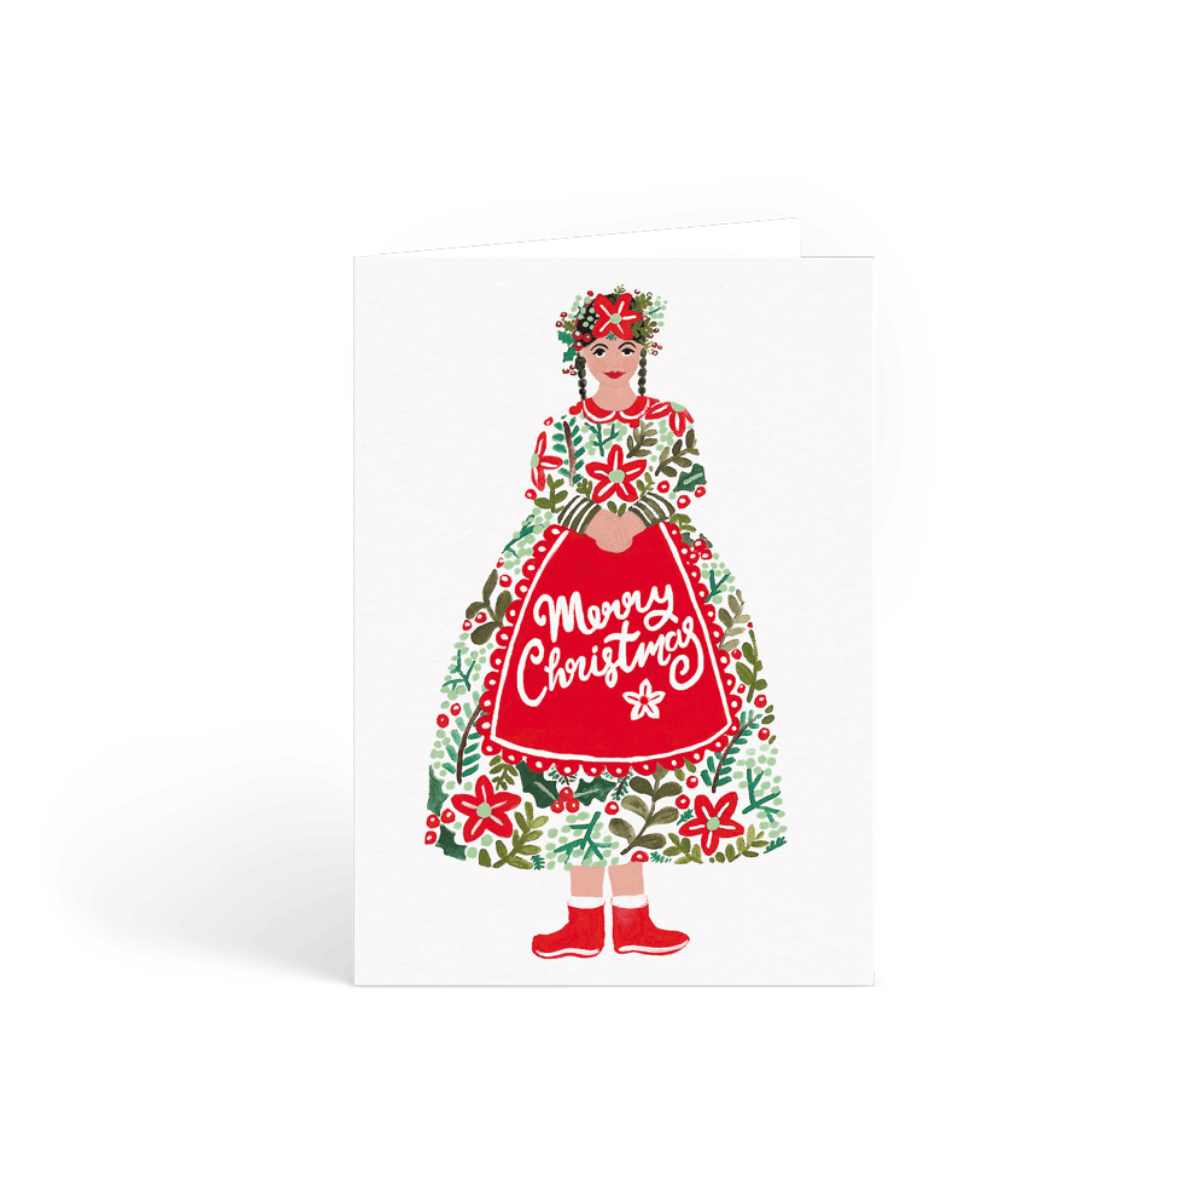 Https%3a%2f%2fwww.papier.com%2fproduct image%2f39625%2f2%2fms christmas 9841 front 1528711822.png?ixlib=rb 1.1